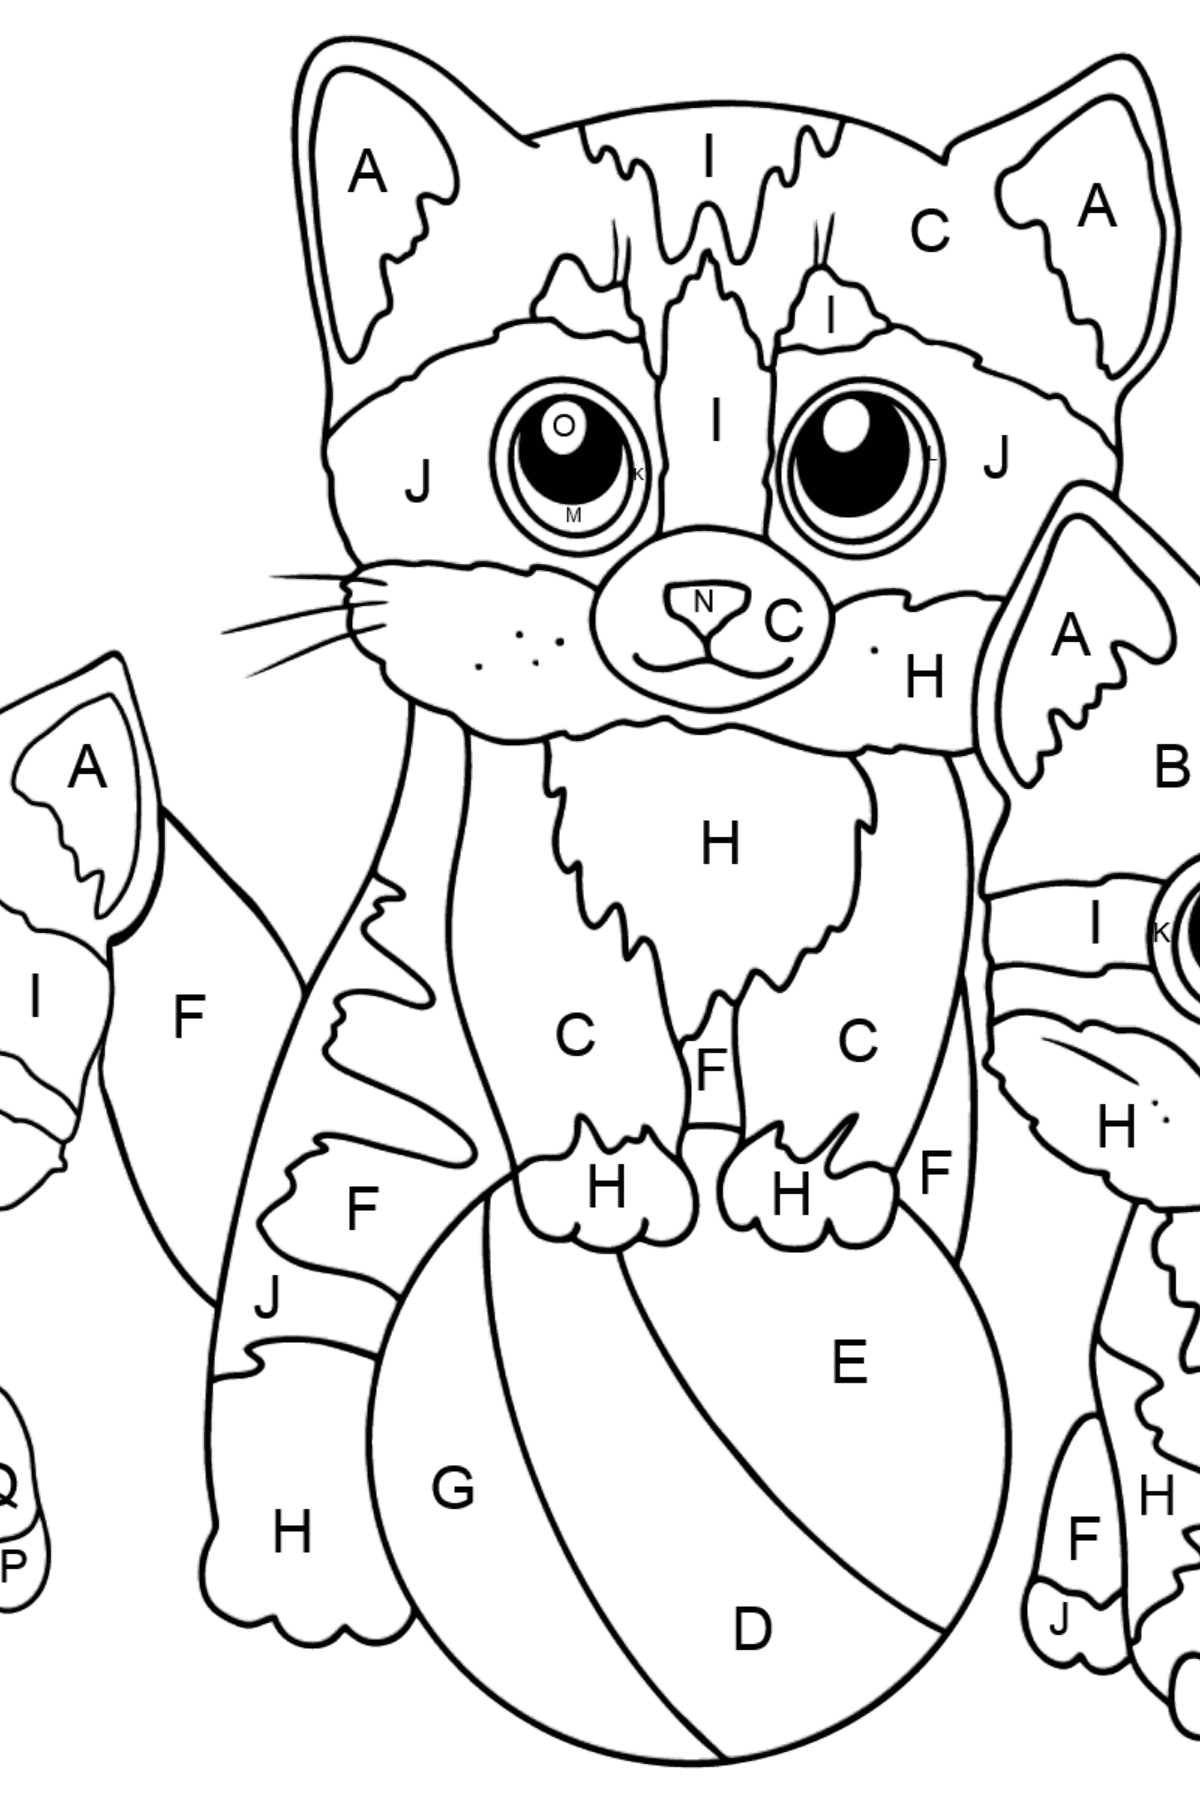 Coloring Page - Three Kittens are Playing Together with a Ball  - Coloring by Letters for Kids